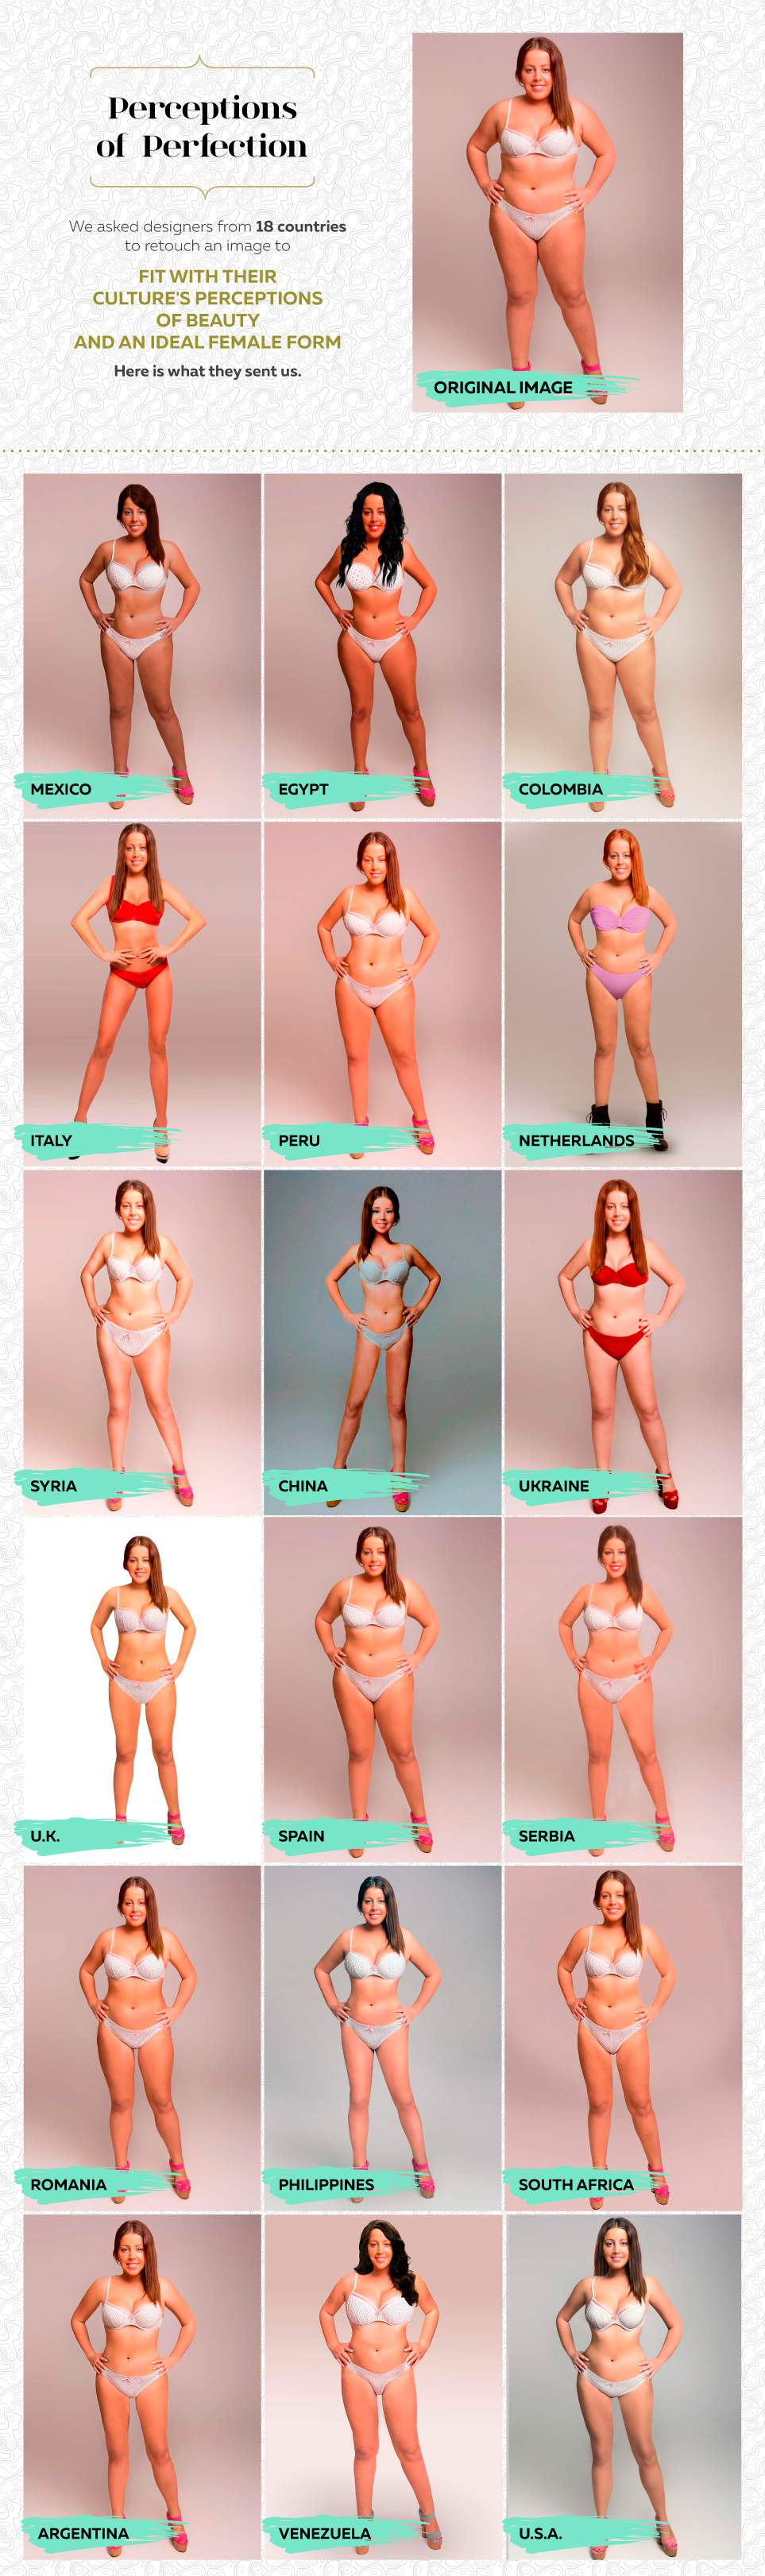 Eye Opening Photoshop Study Reveals Beauty Standards Around The World | Read Full Article Now at RetouchingBlog.com